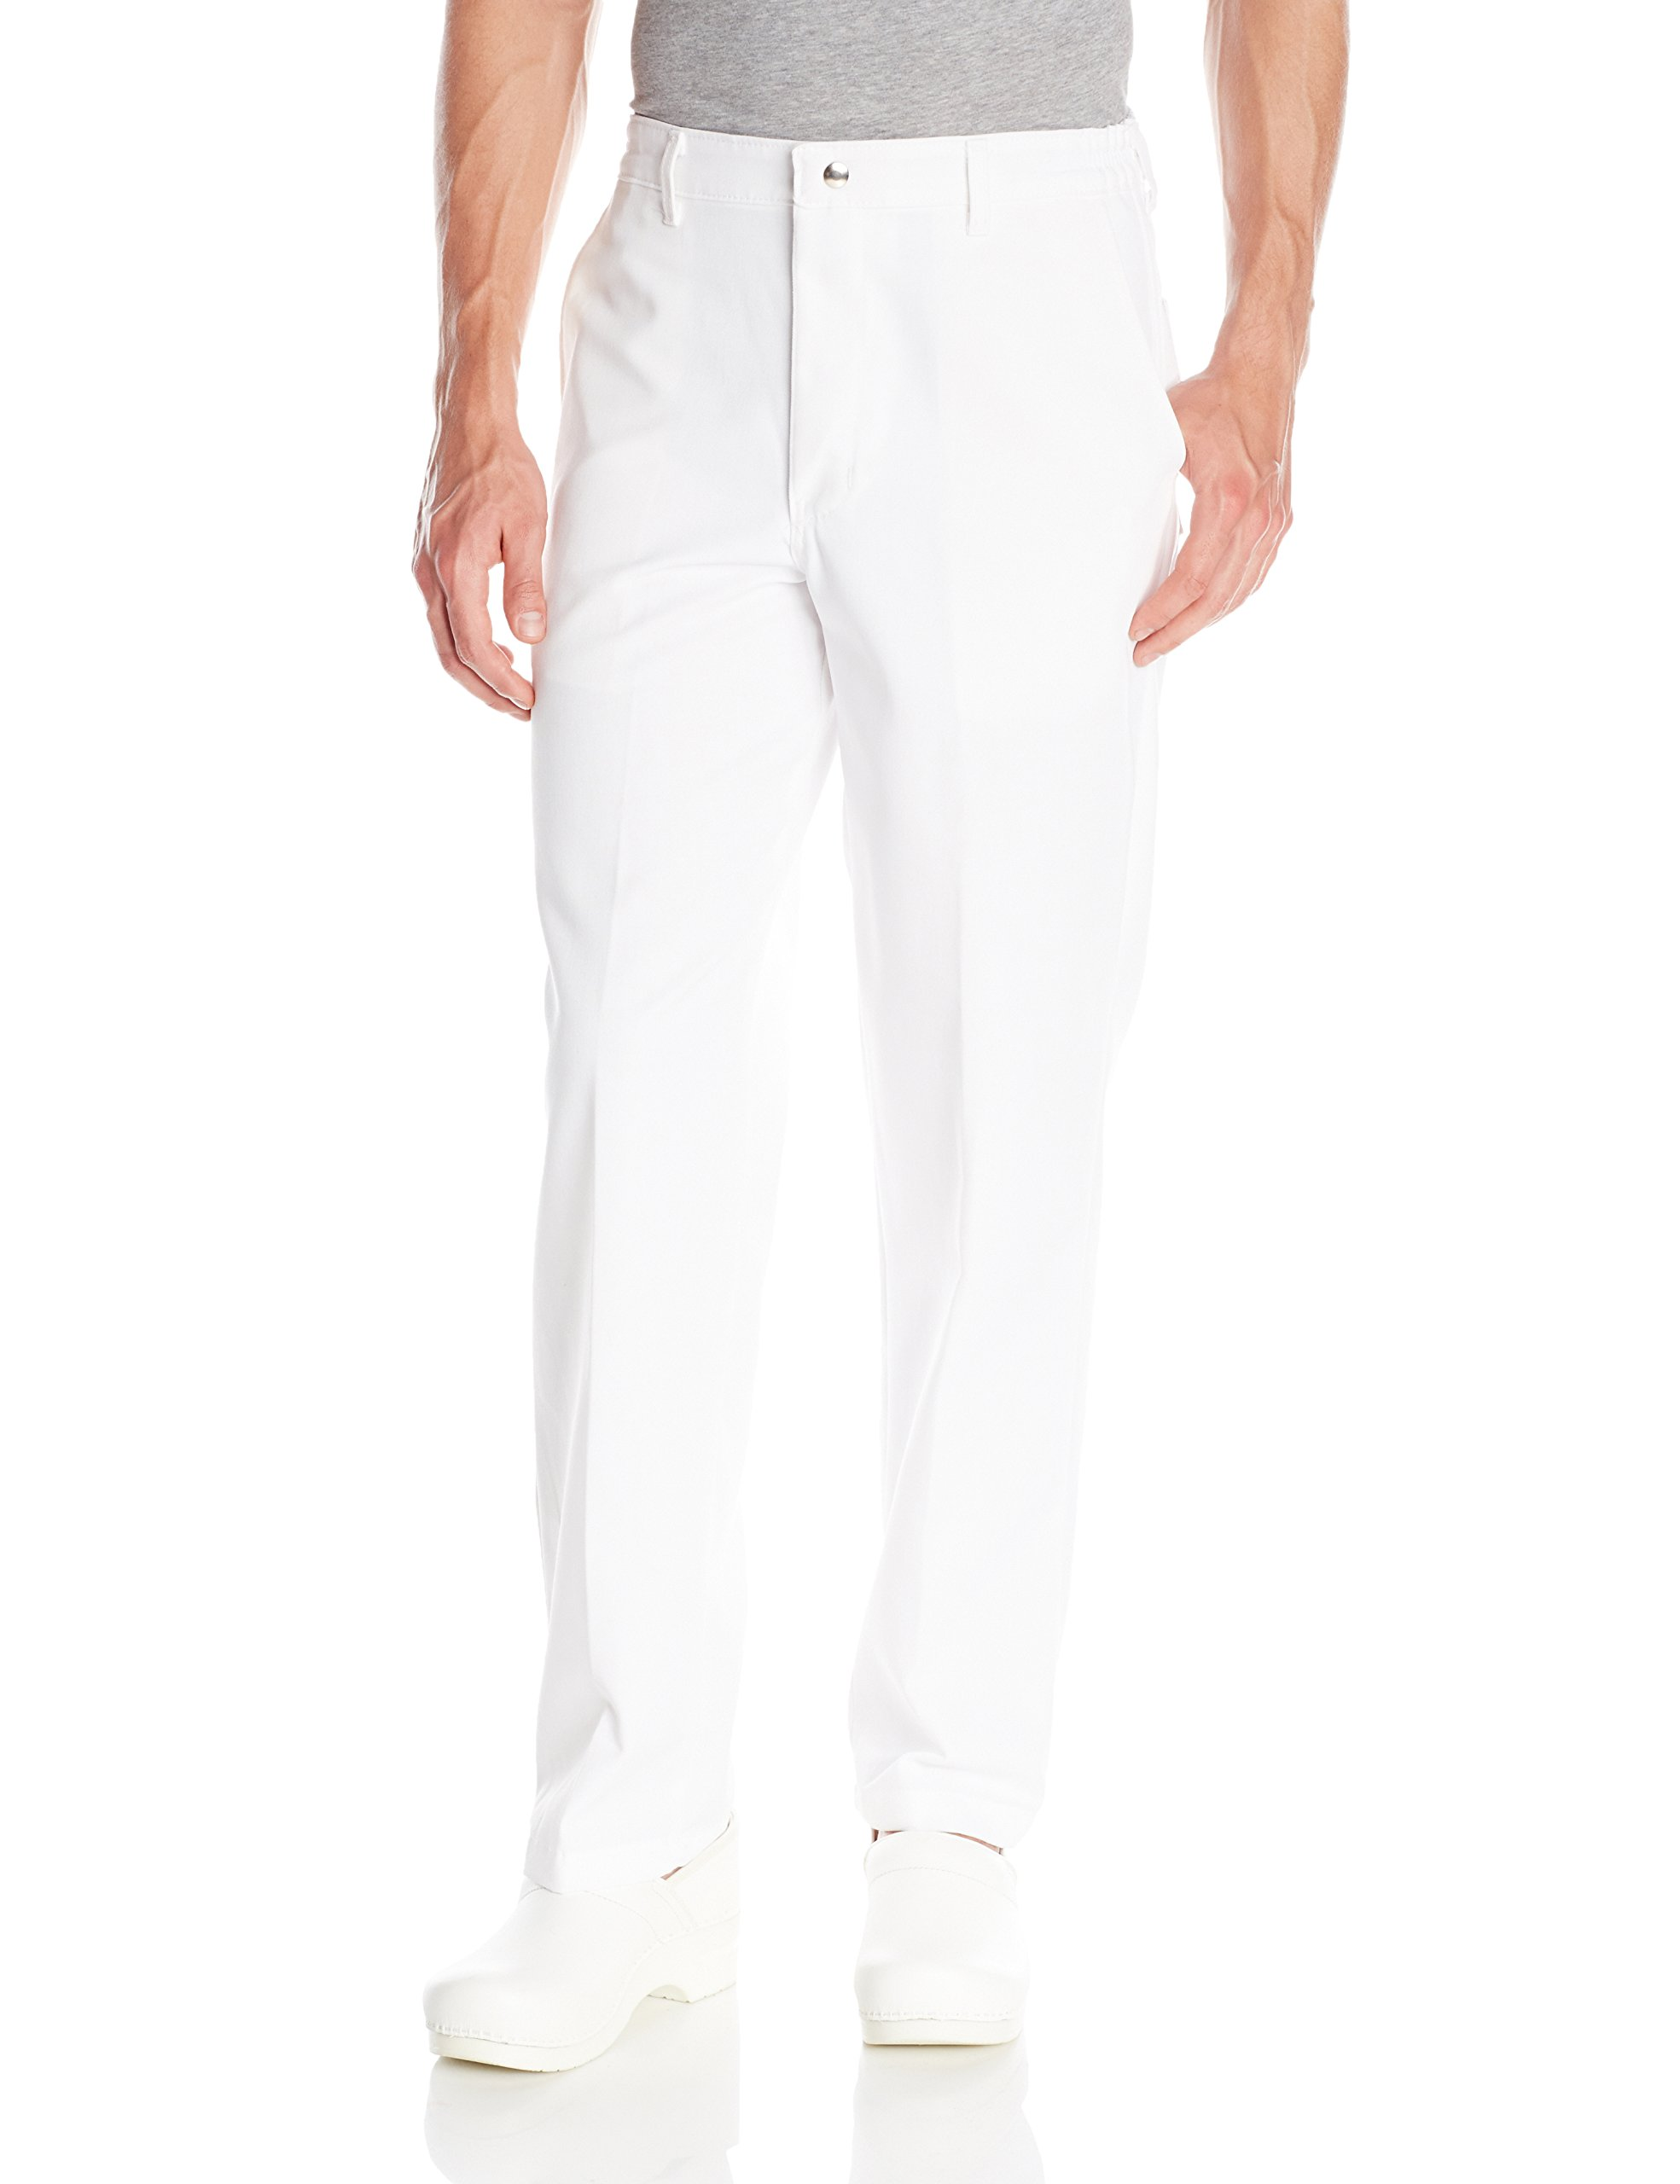 Chef Designs Men's RK Cook Pant, White, 32x30